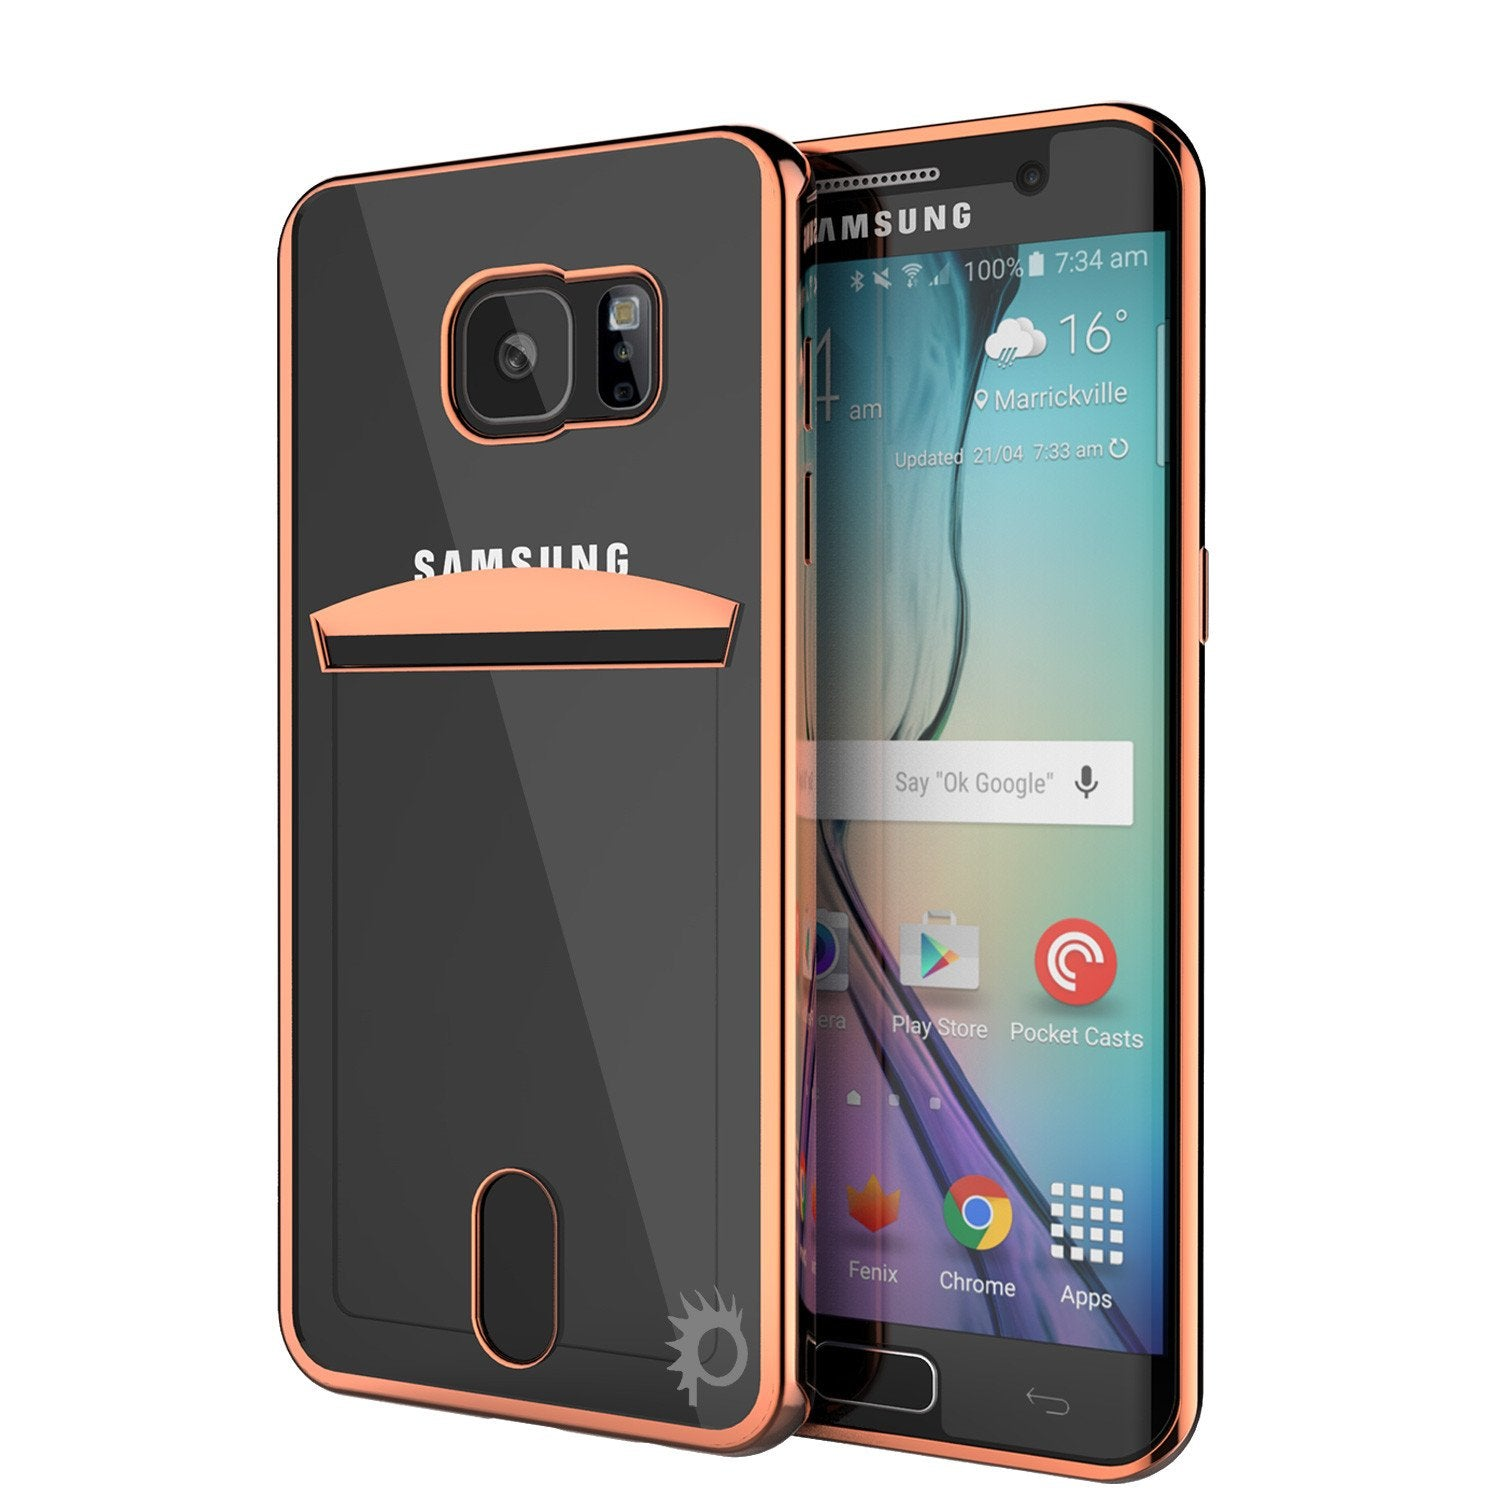 Galaxy S6 EDGE Case, PUNKCASE® LUCID Rose Gold Series | Card Slot | SHIELD Screen Protector